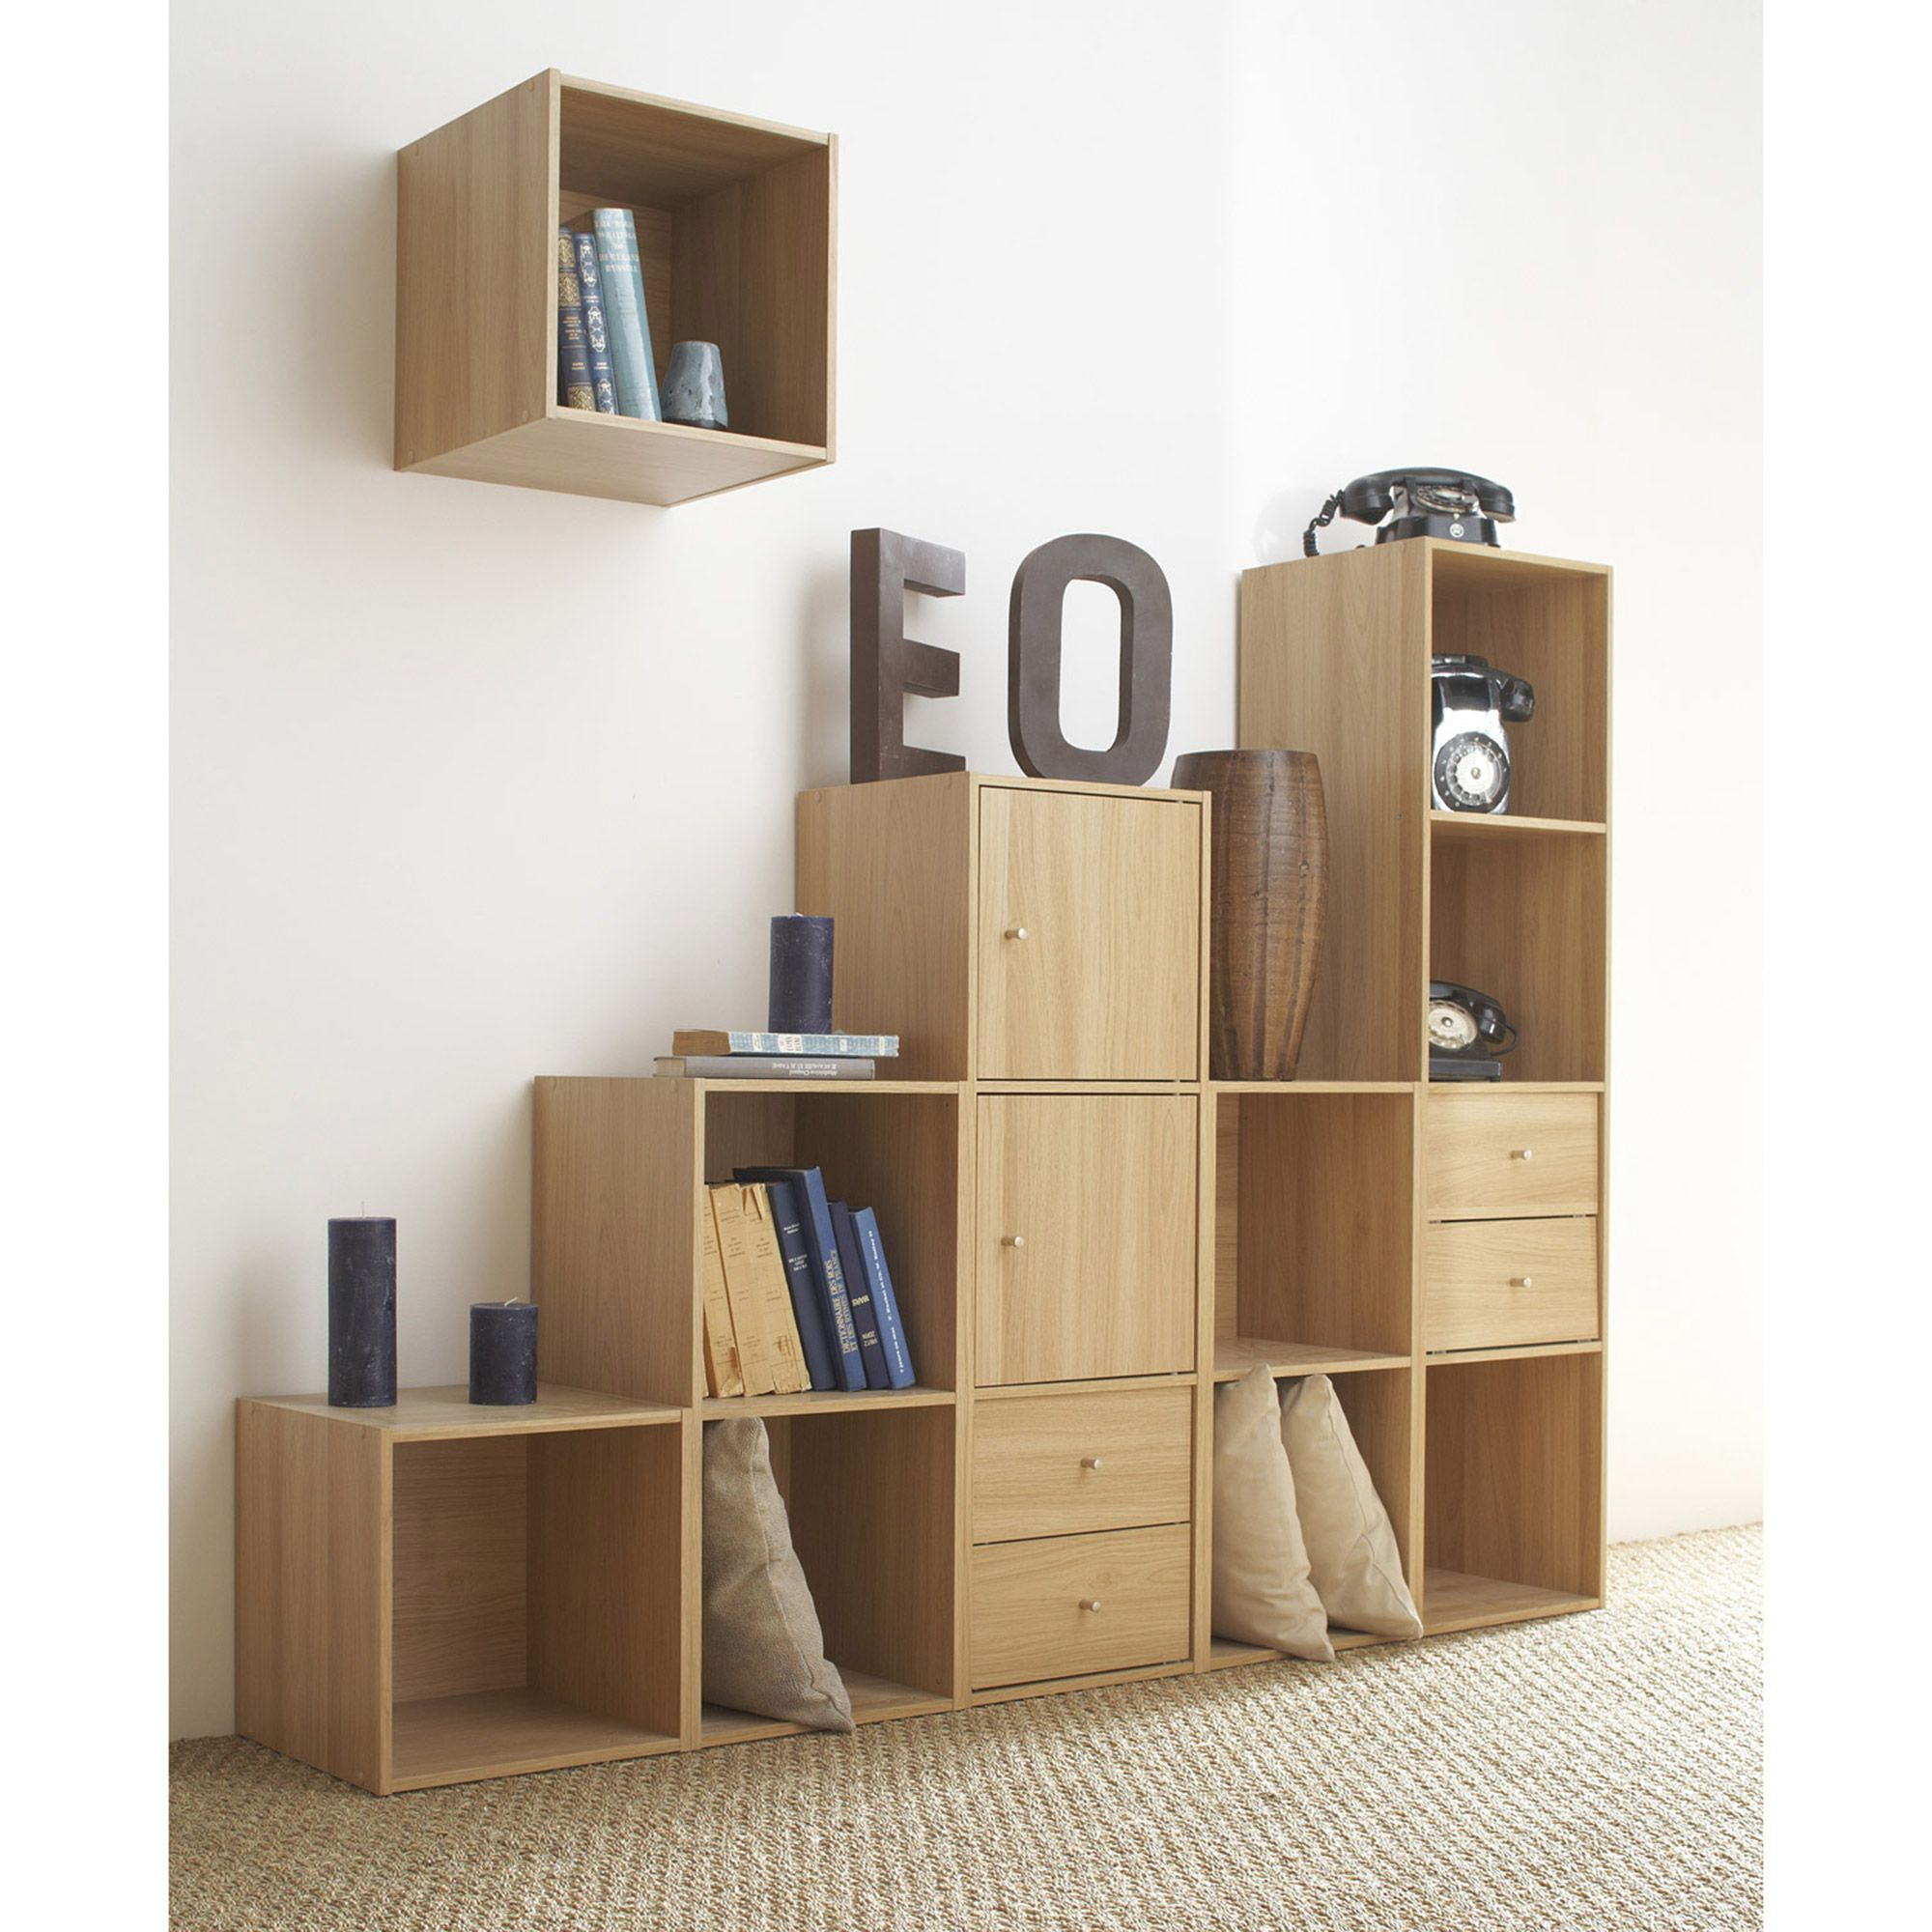 etag re cube en bois l35cm personnalisable multikaz ps et cubes. Black Bedroom Furniture Sets. Home Design Ideas